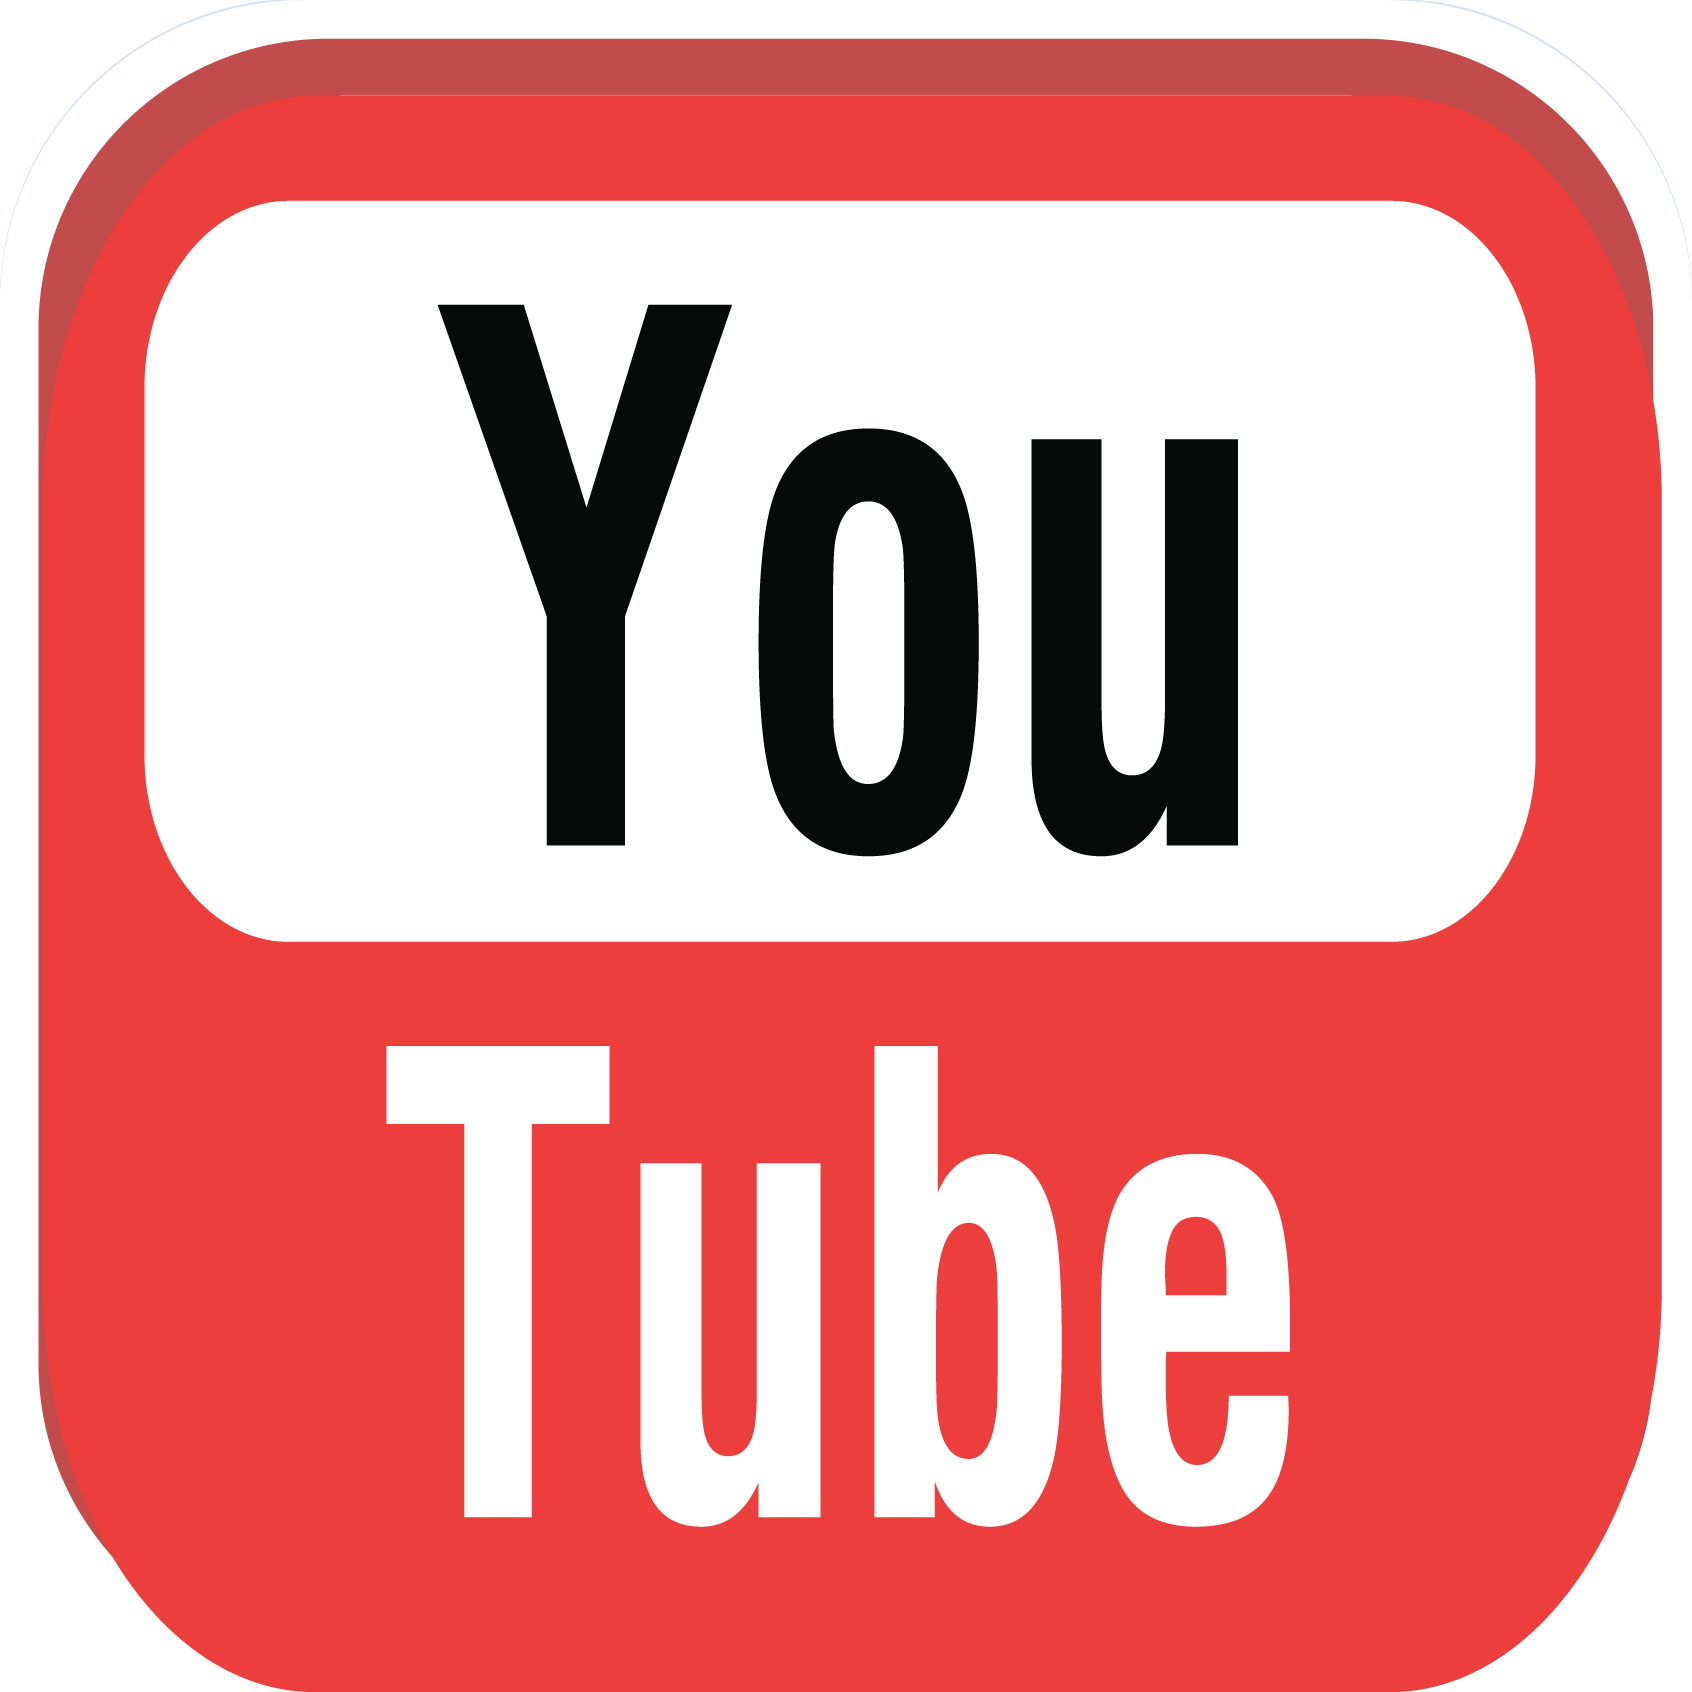 Youtube Download Png PNG Image - Youtube PNG